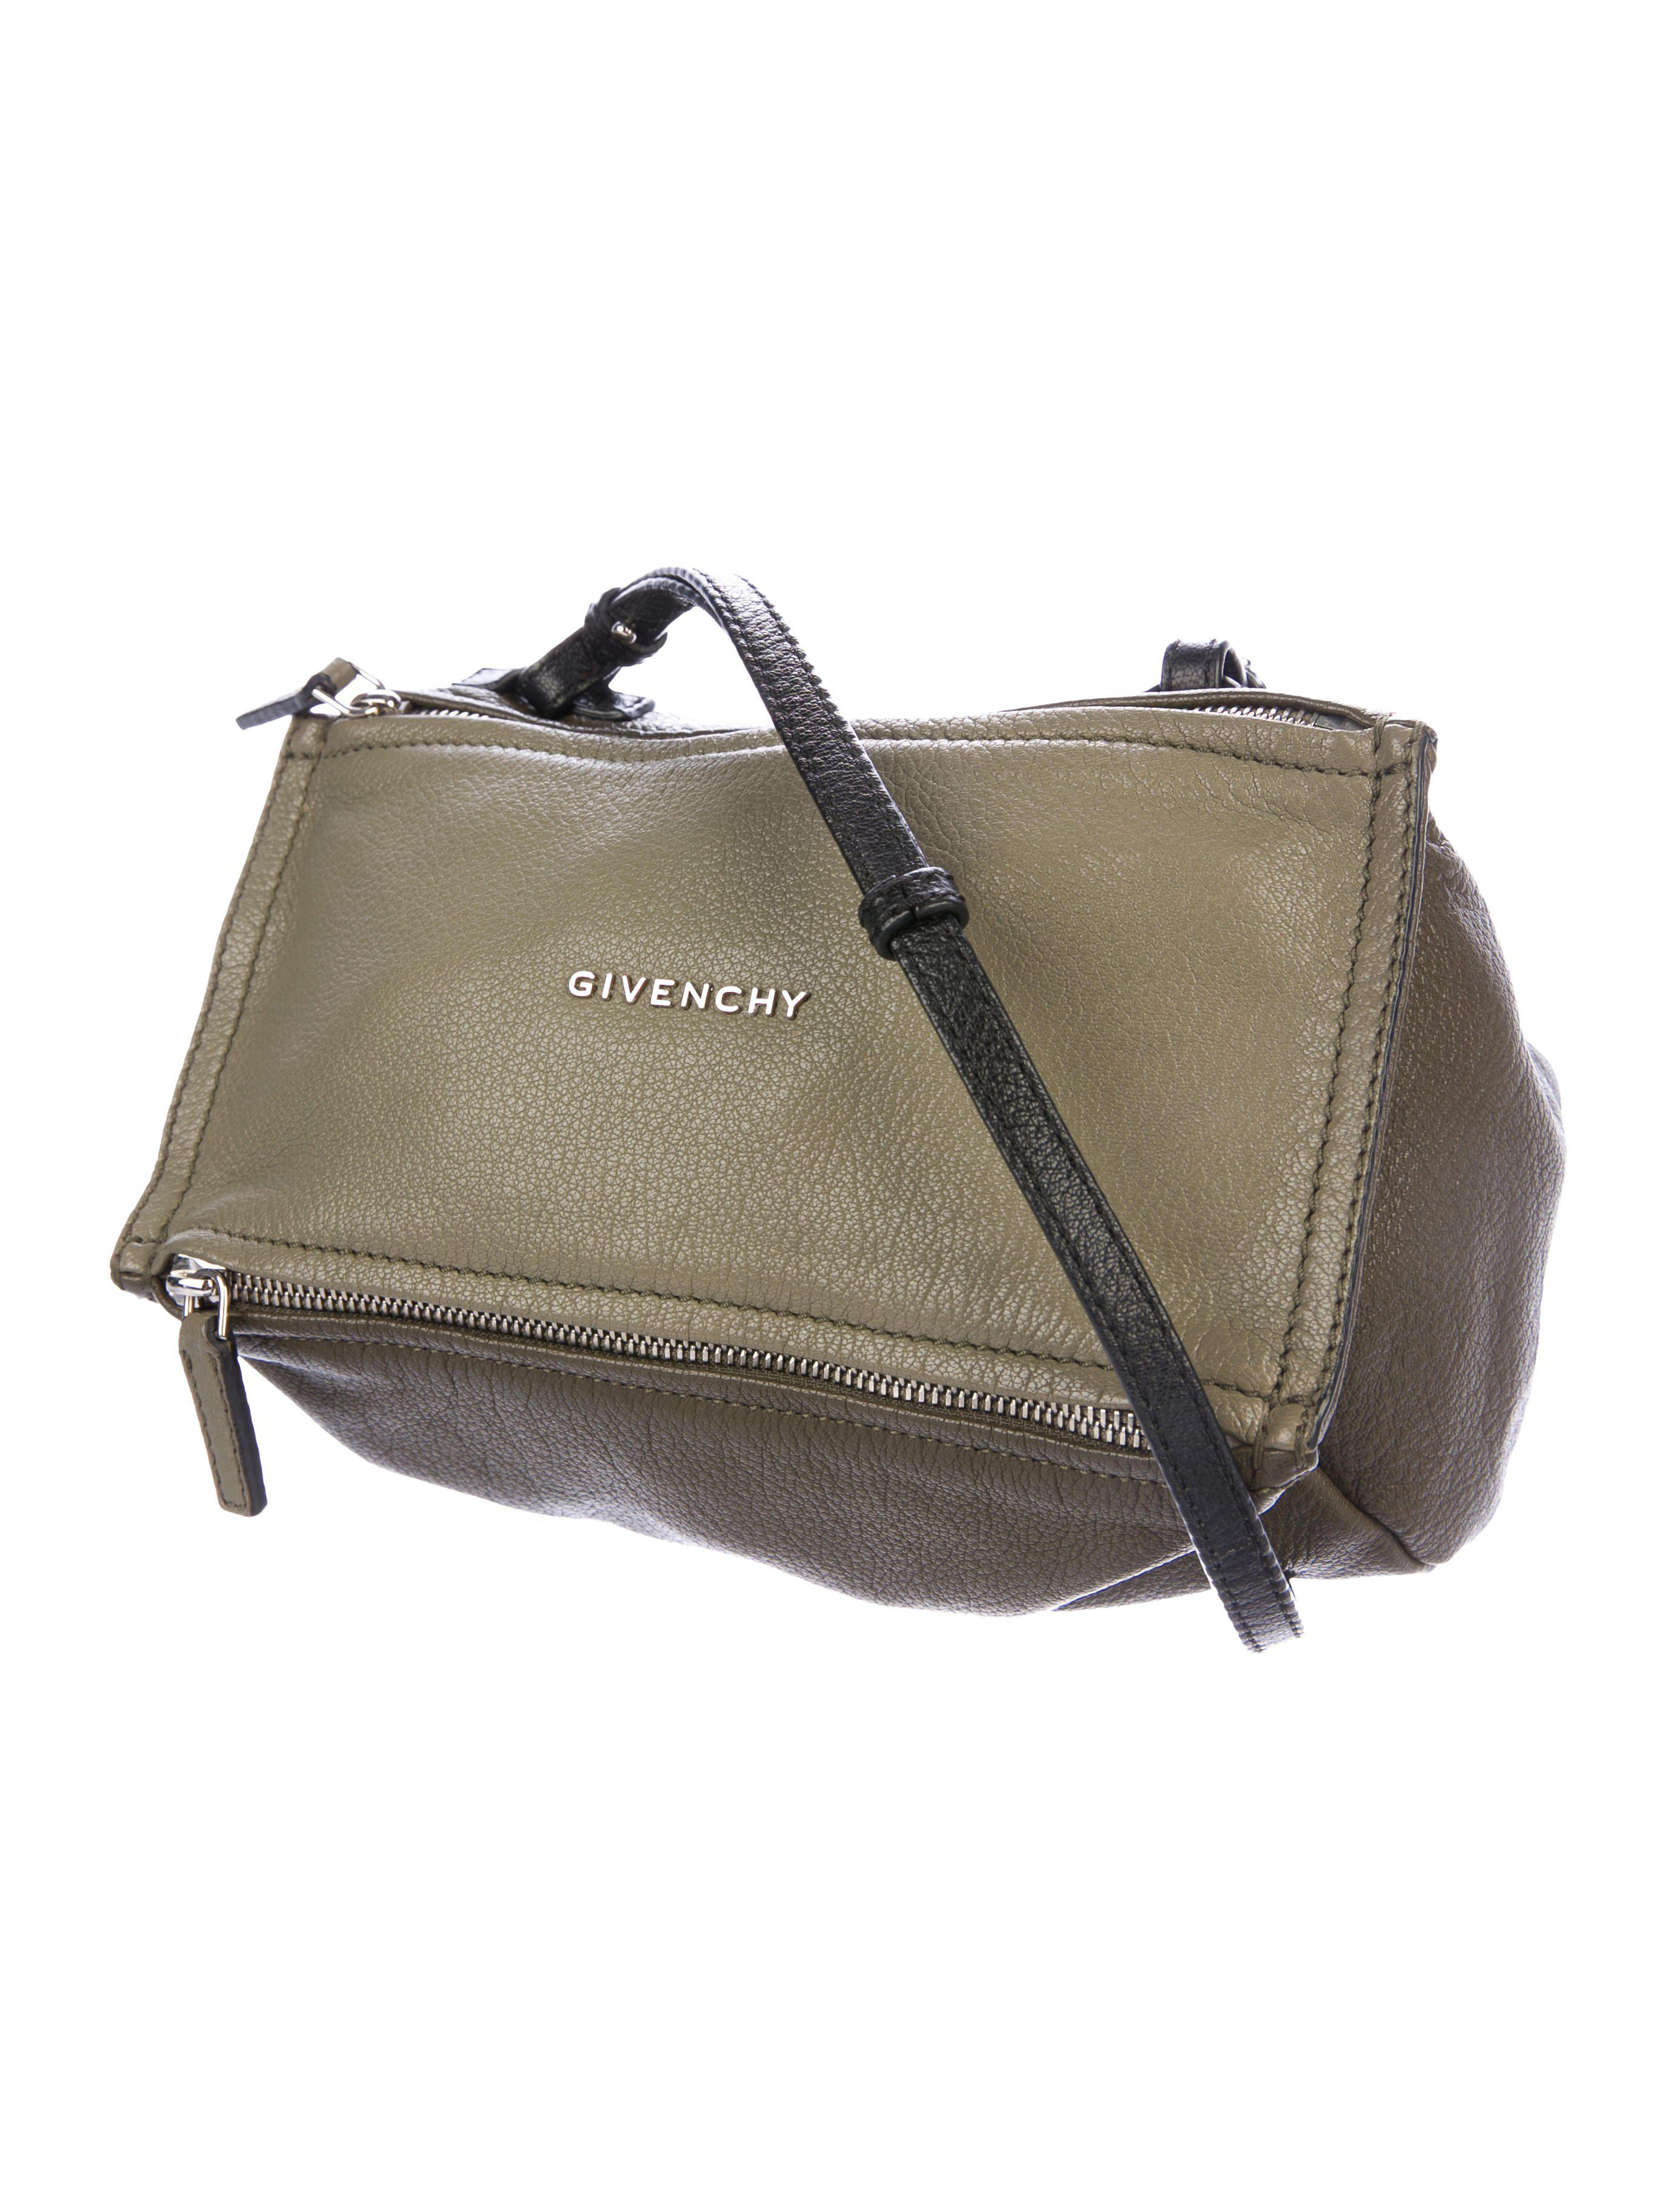 8b00f95976 Lyst - Givenchy Mini Pandora Crossbody Bag Olive in Metallic